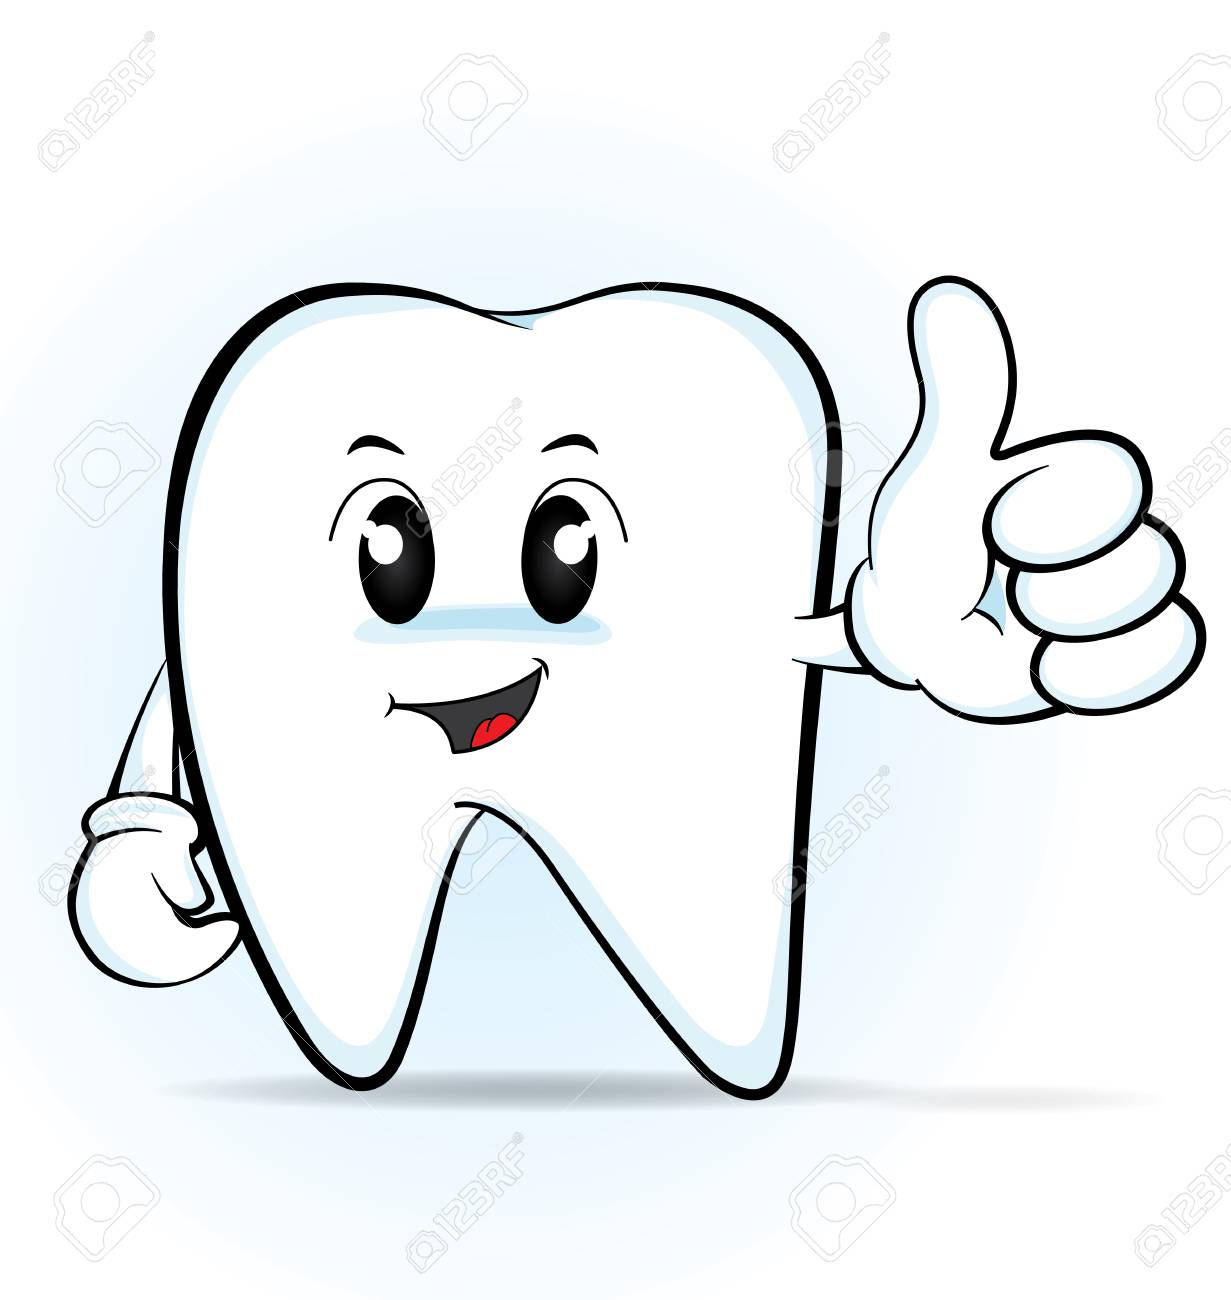 Cute Cartoon Tooth Giving The Thumbs Up Vector 10 Royalty Free Cliparts Vectors And Stock Illustration Image 74037126